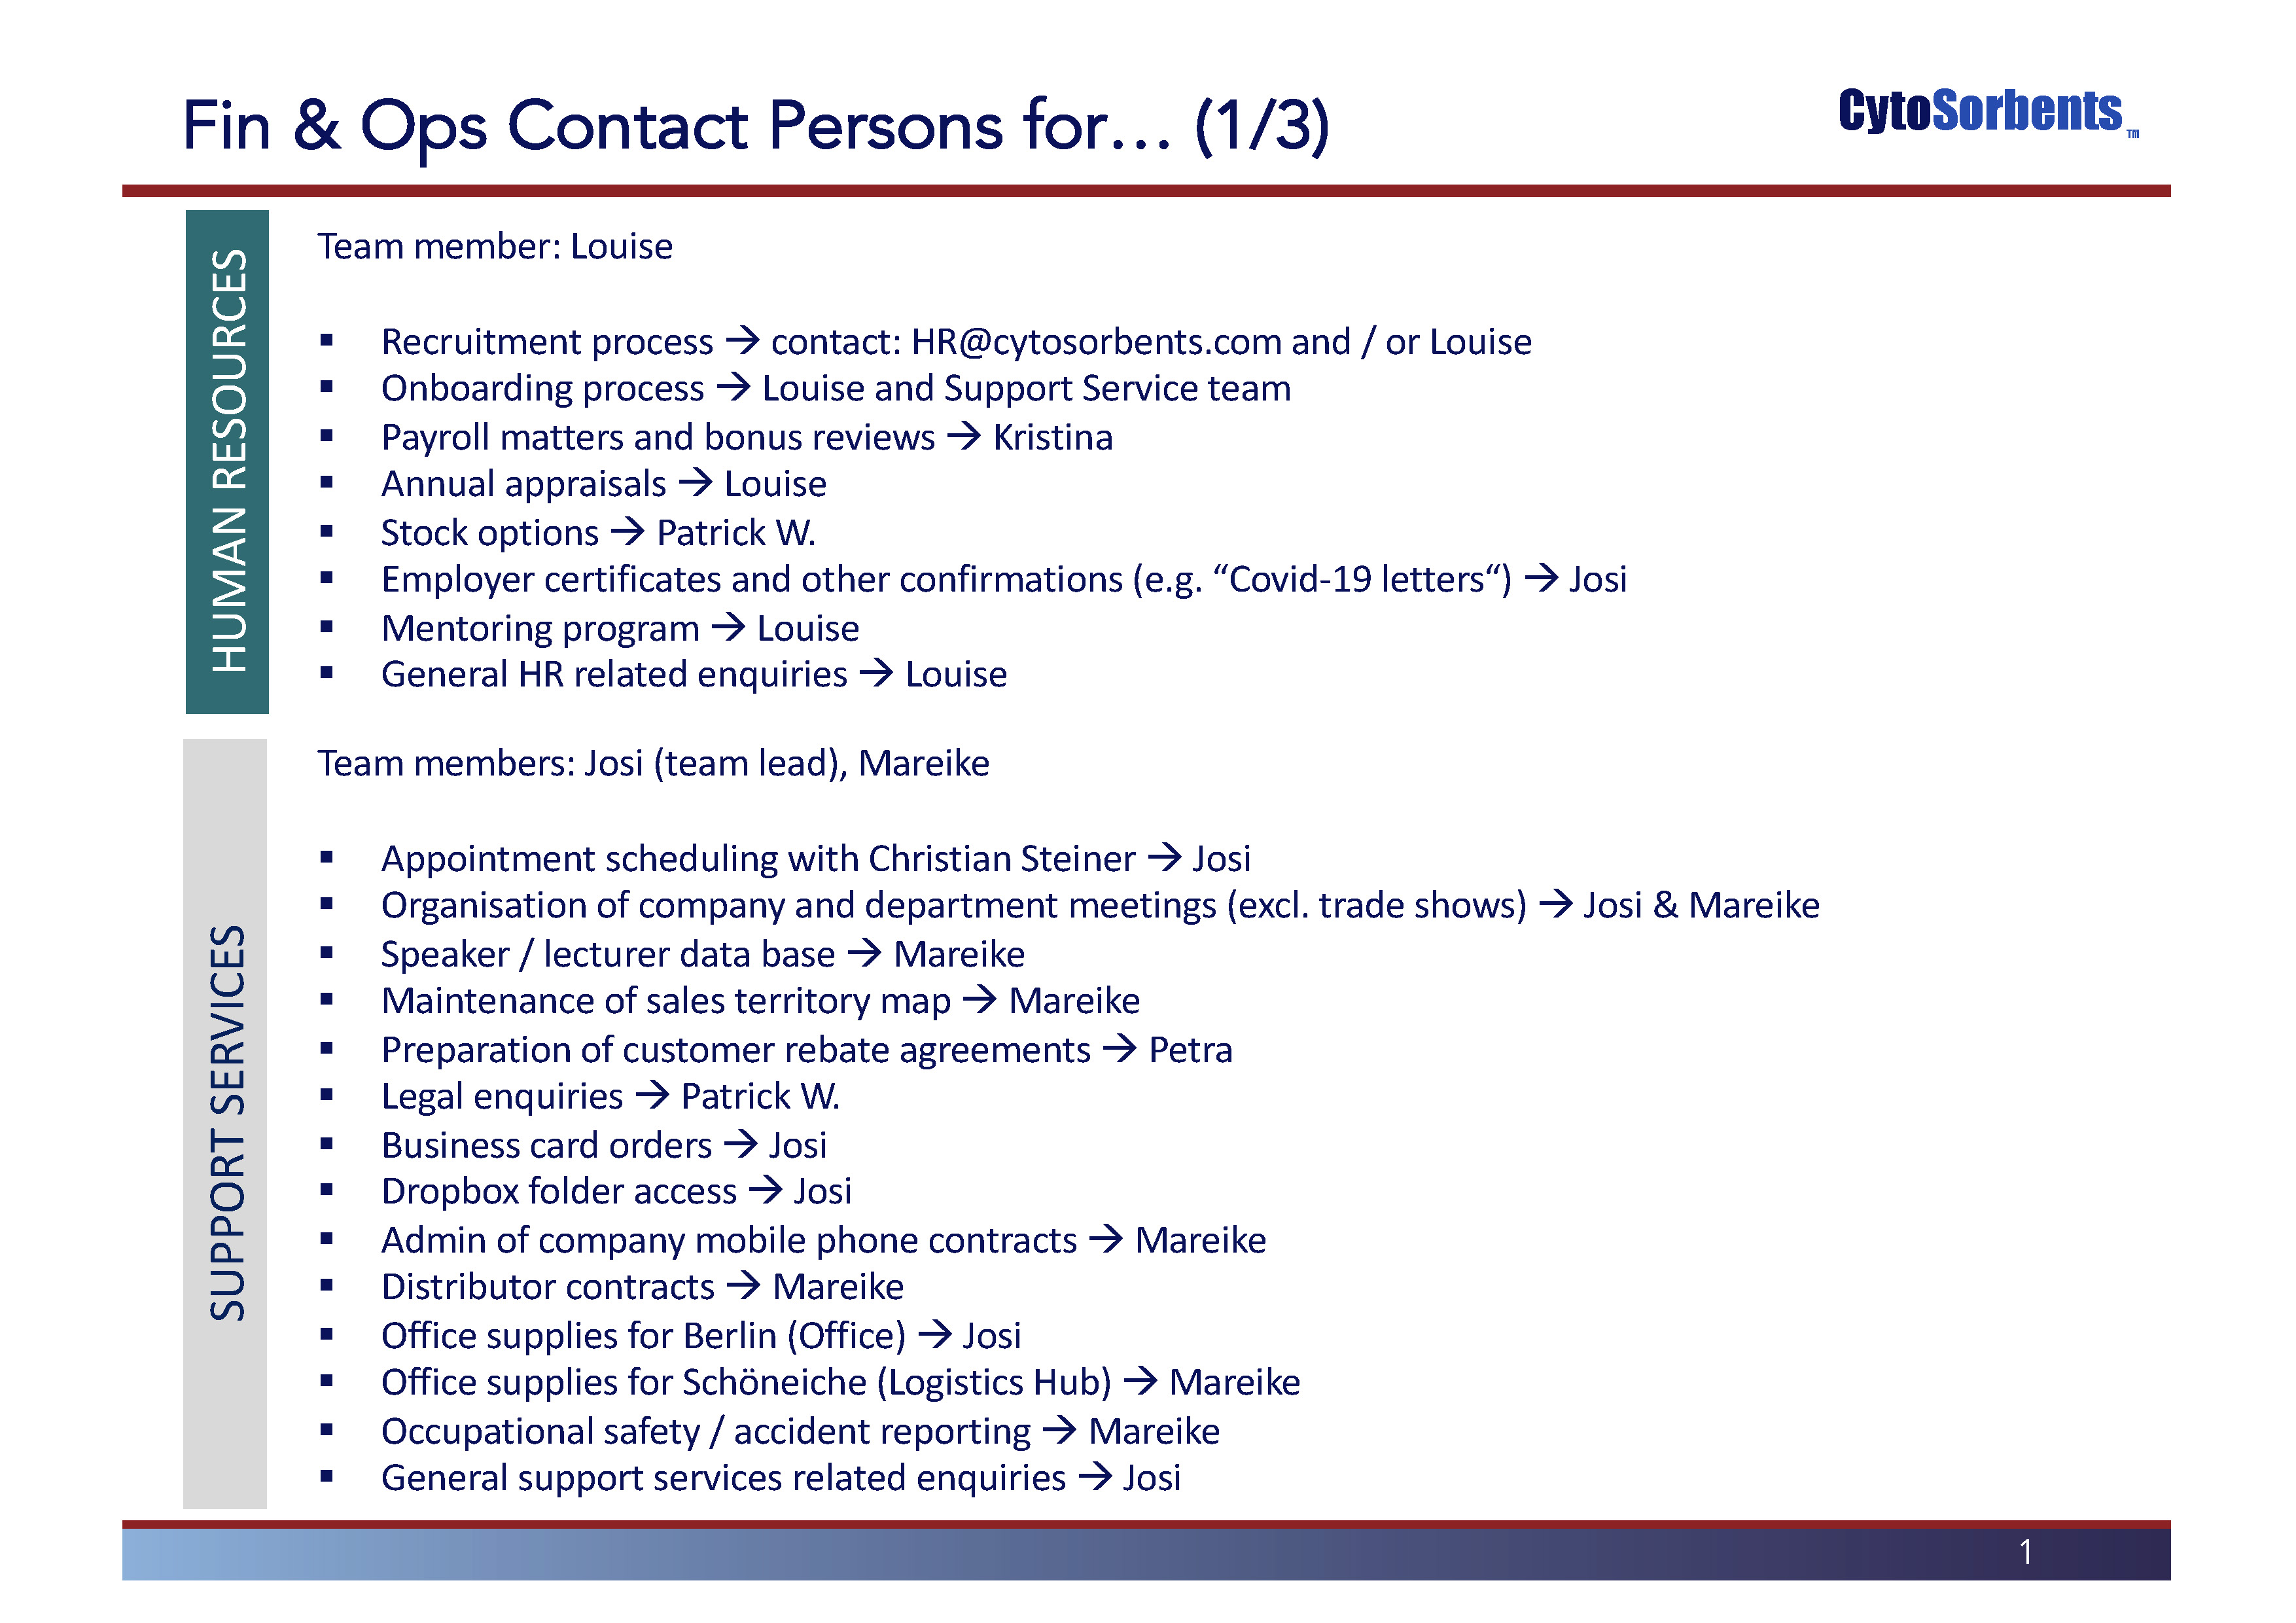 2021-06-16_Fin-Ops-Directory_Seite_14hFObE7Cx86cO